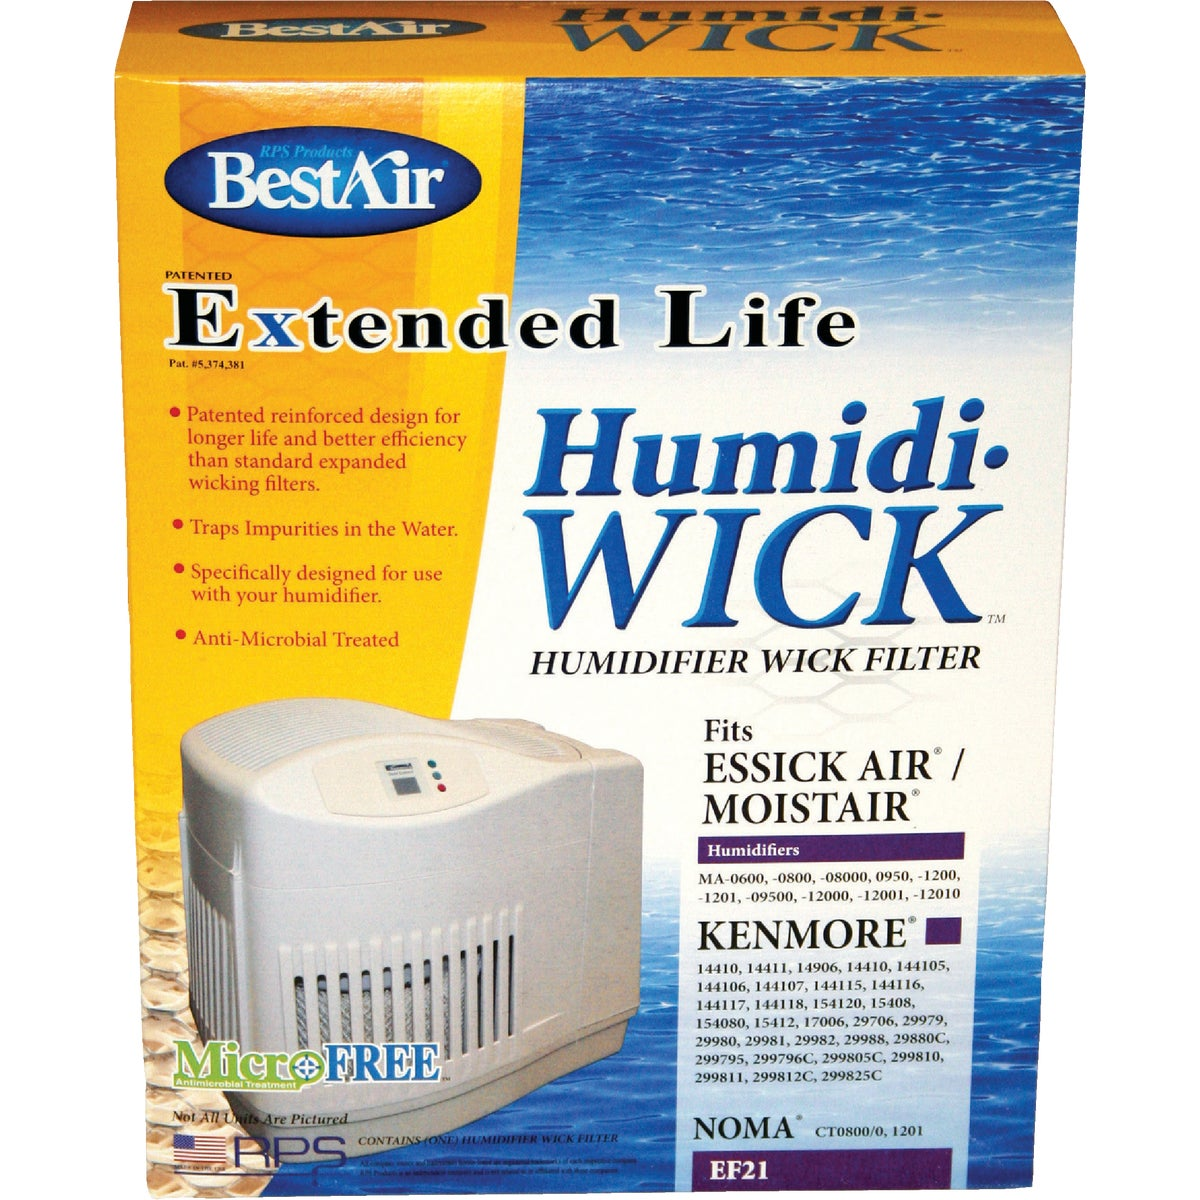 HUMIDIFIER WICK FILTER - EF21 by Rps Products Inc